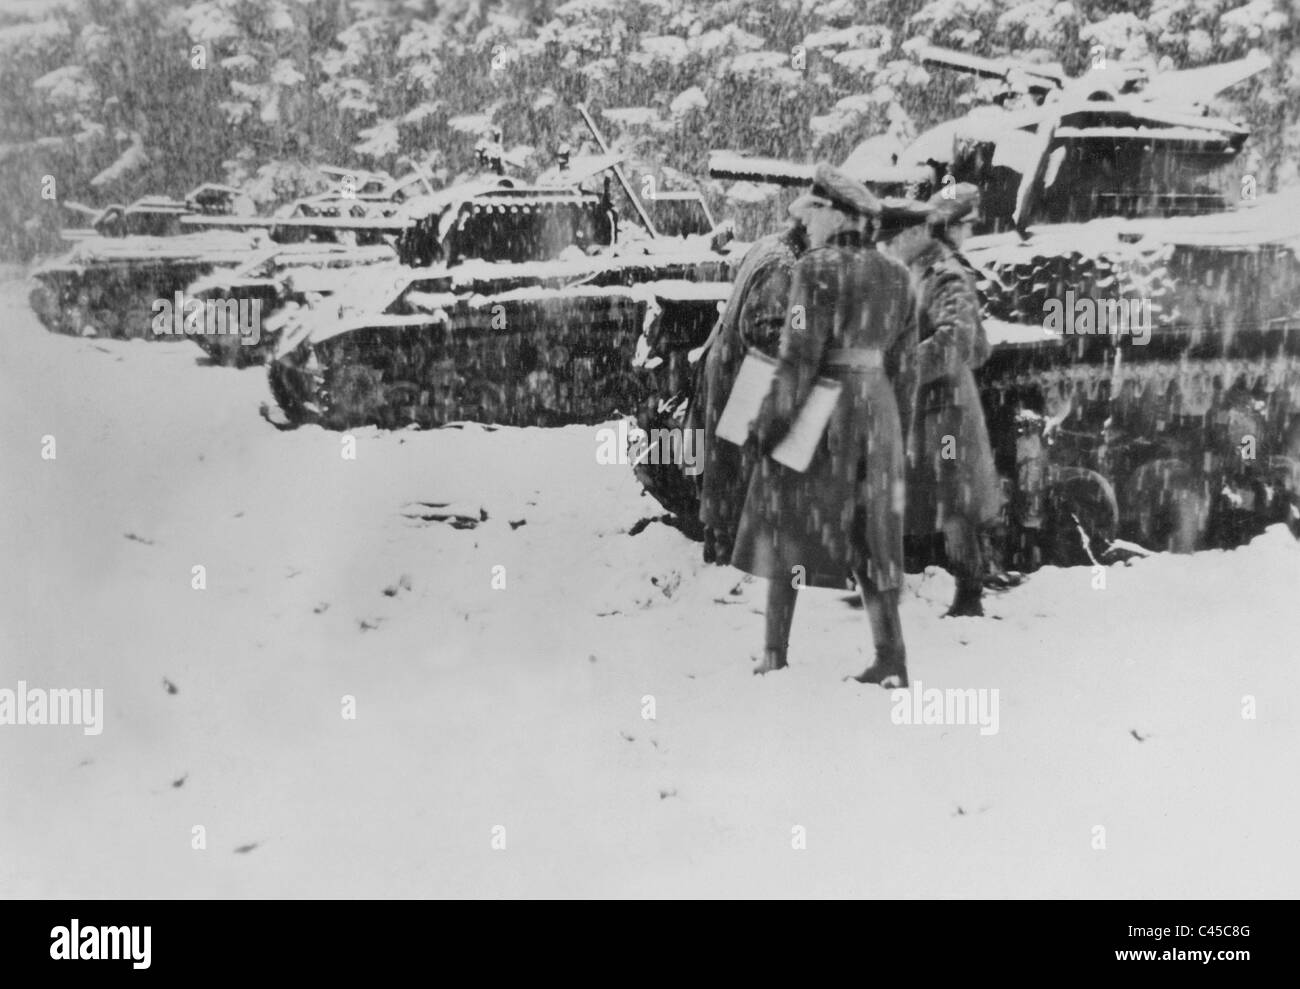 Ardennes 1945 stock photos ardennes 1945 stock images alamy nazi german officers inspect destroyed american tanks in the ardennes 1945 stock image publicscrutiny Gallery